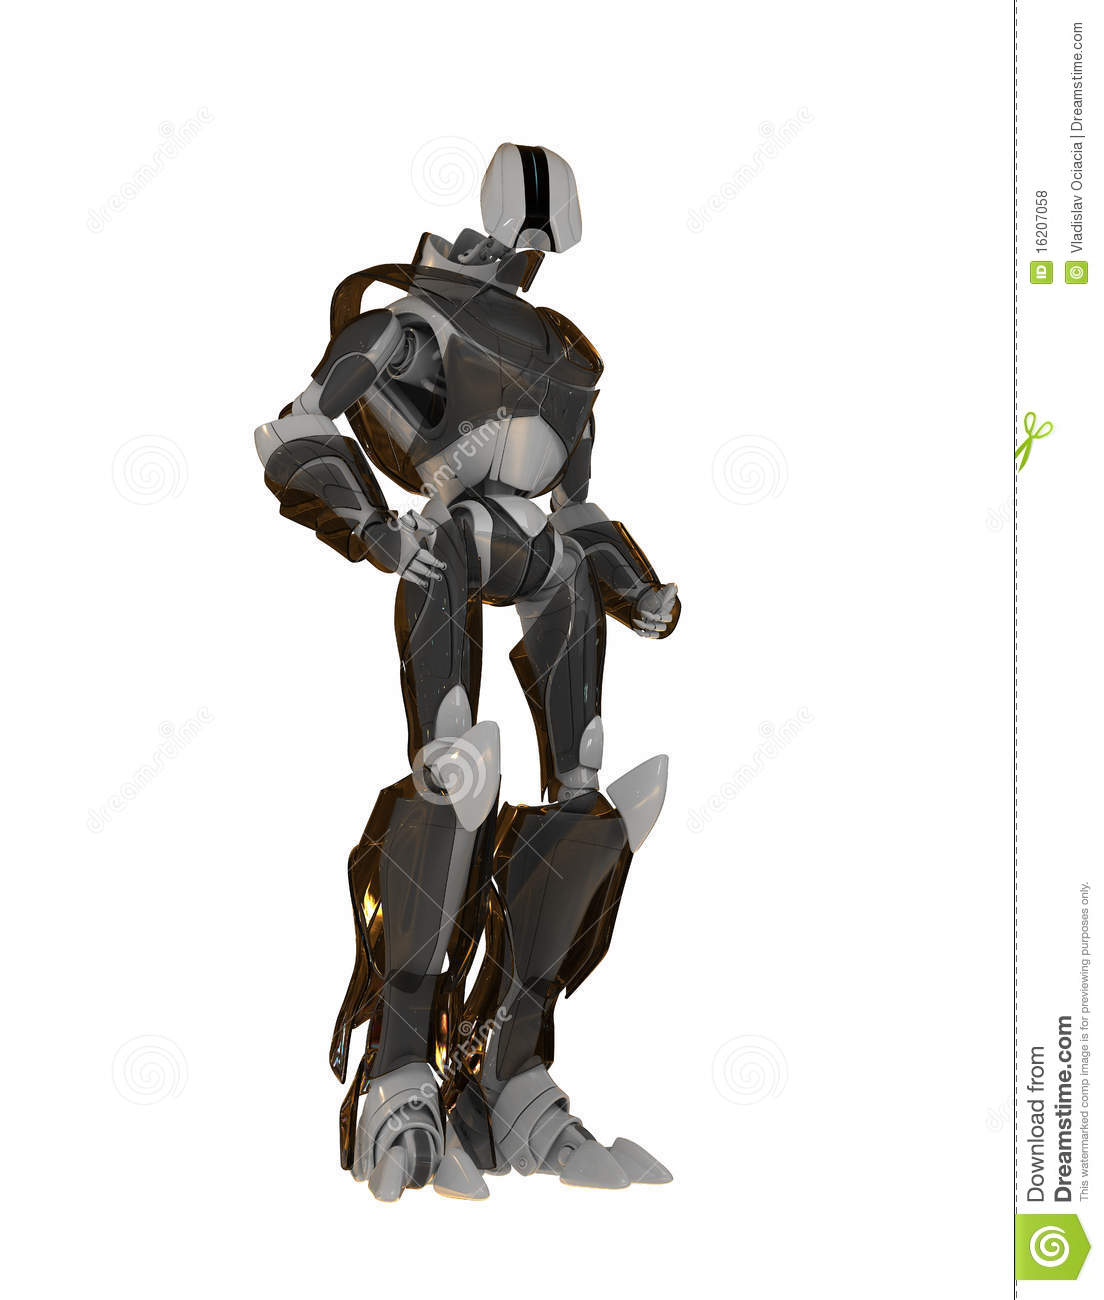 Cool Futuristic Robot Royalty Free Stock Photos - Image: 16207058